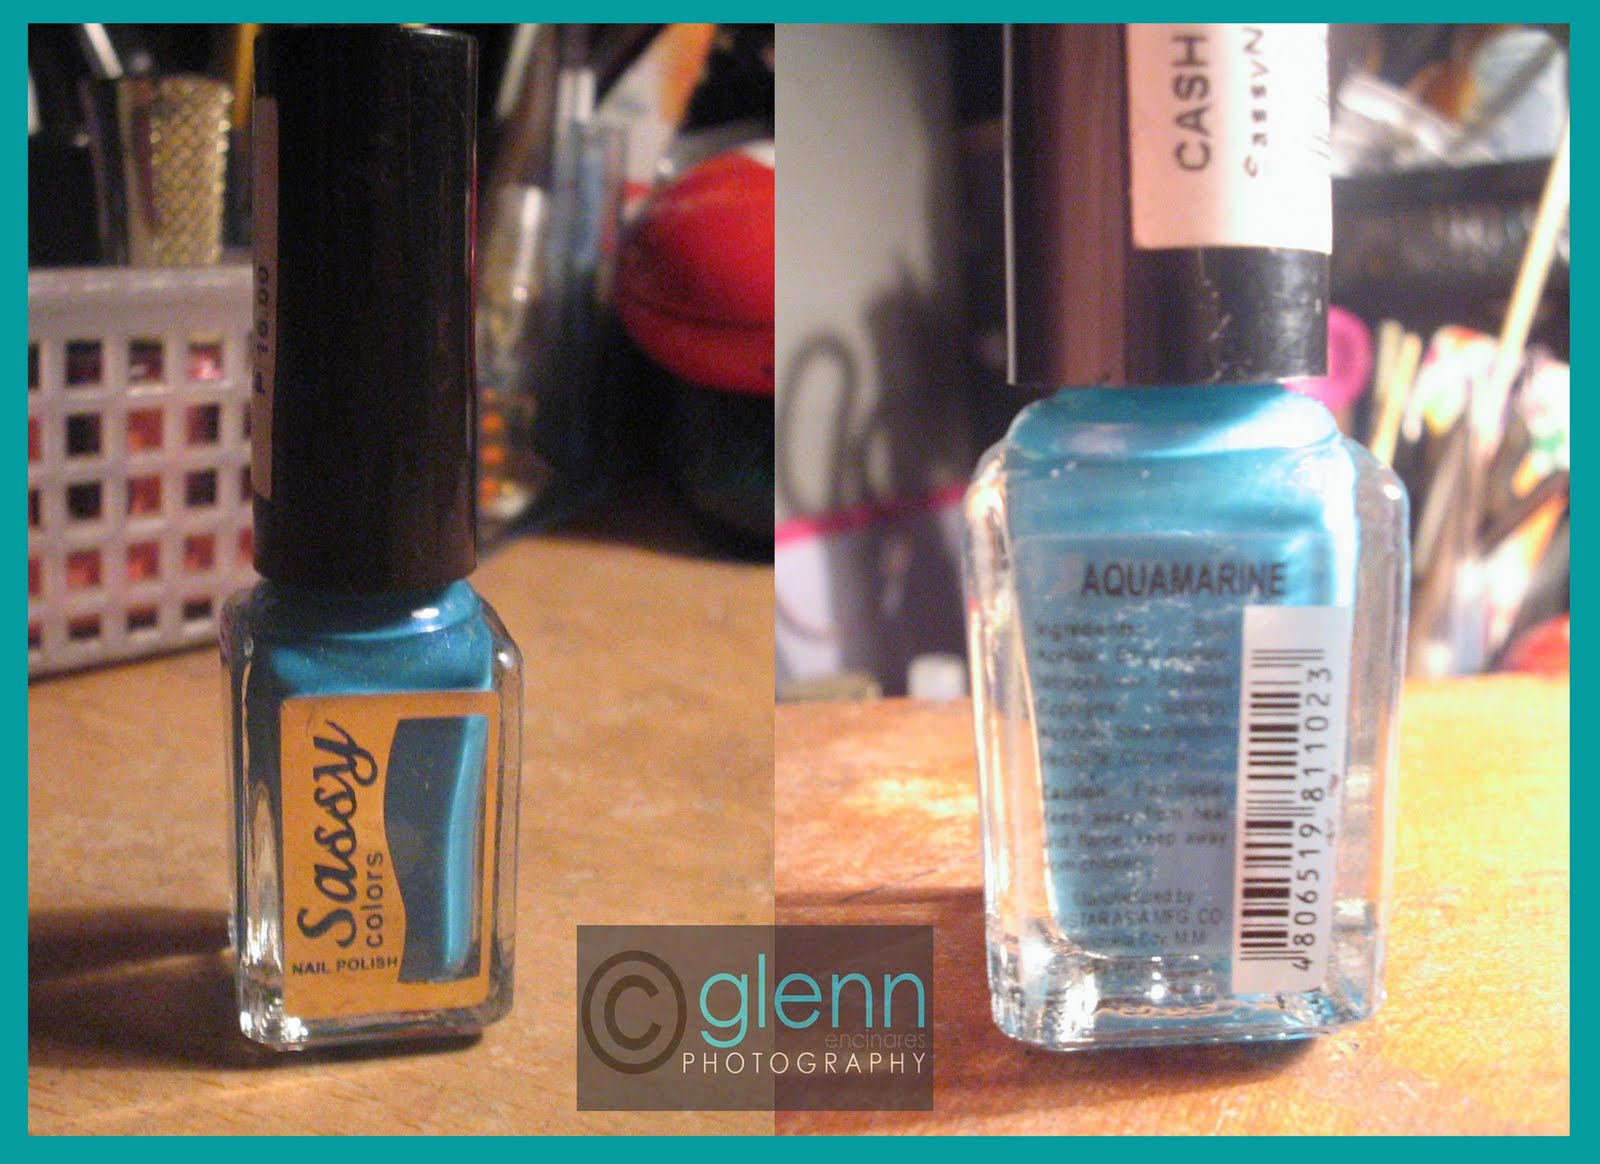 GENCIFIED: NOTD: Sassy Nail Polish in Aquamarine color